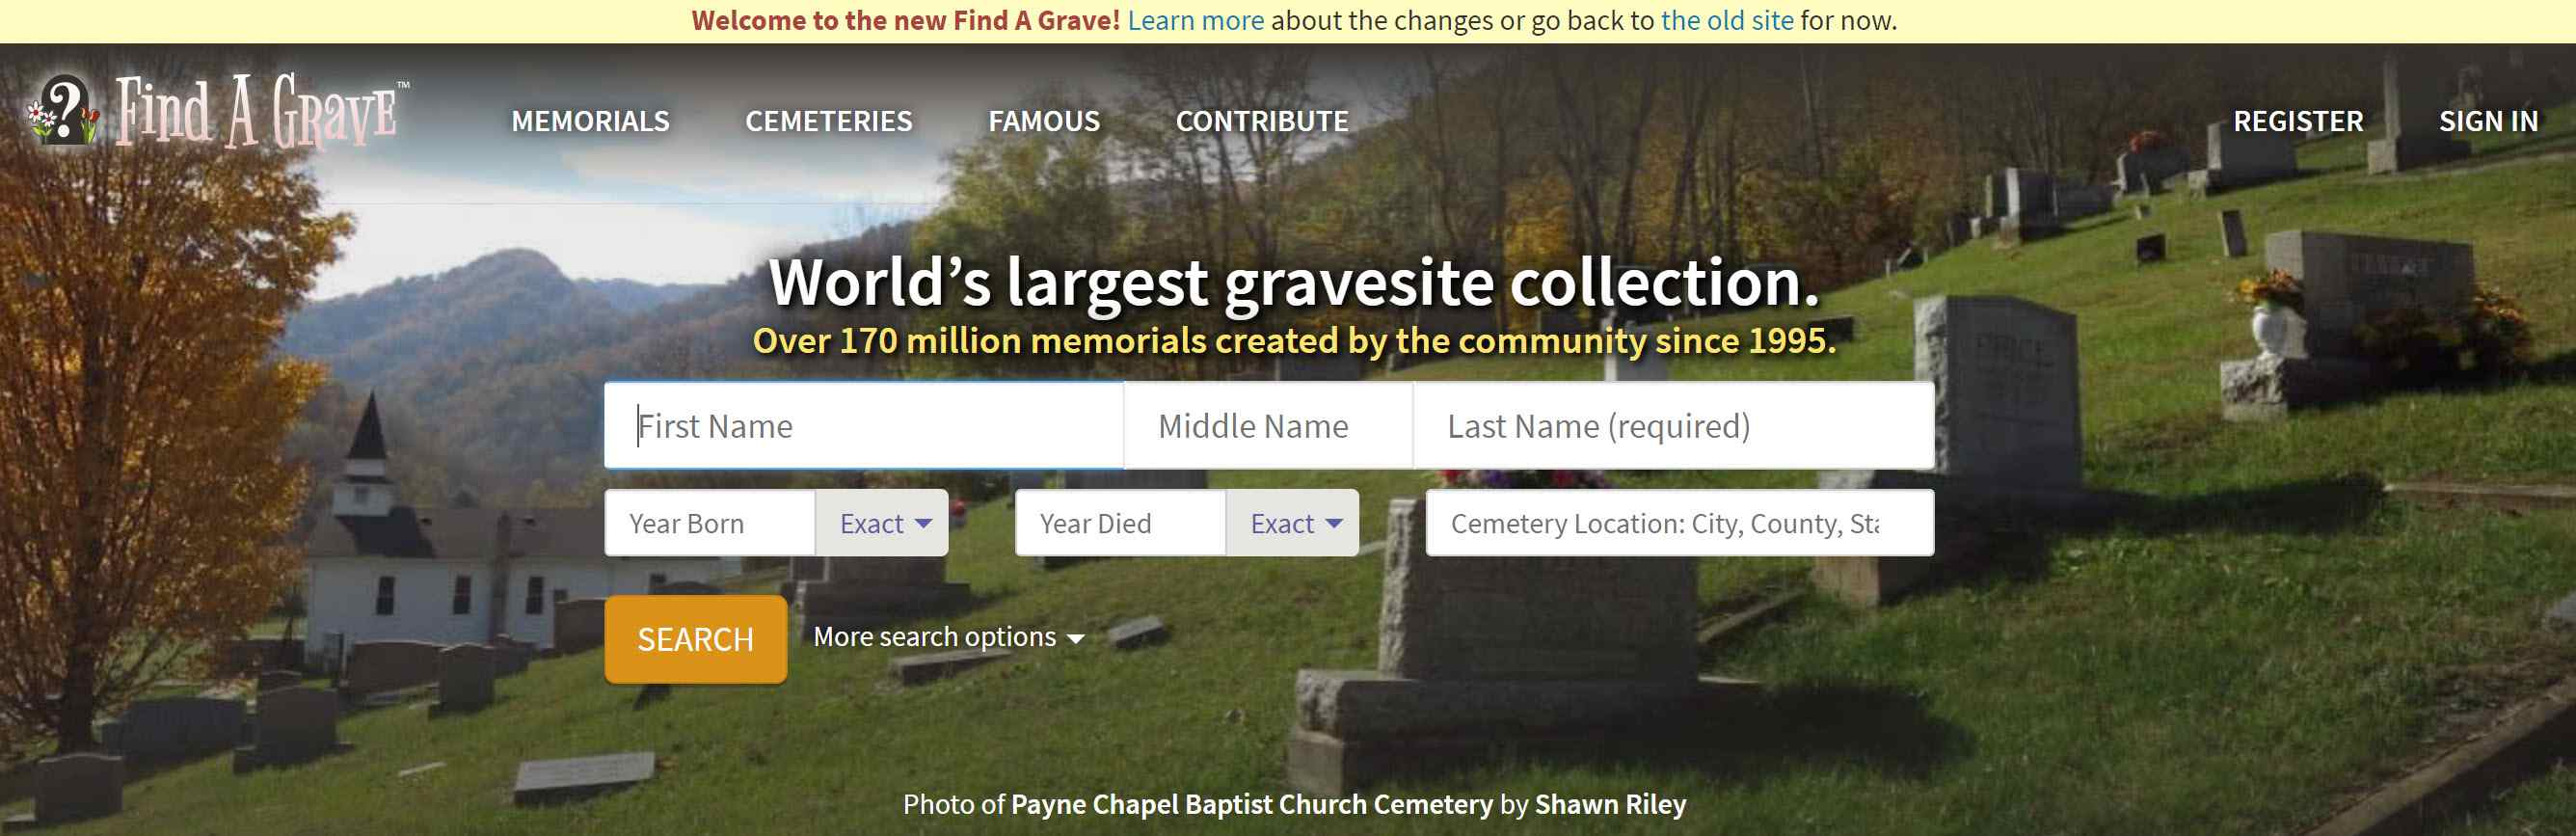 Screenshot of the Find A Grave website.